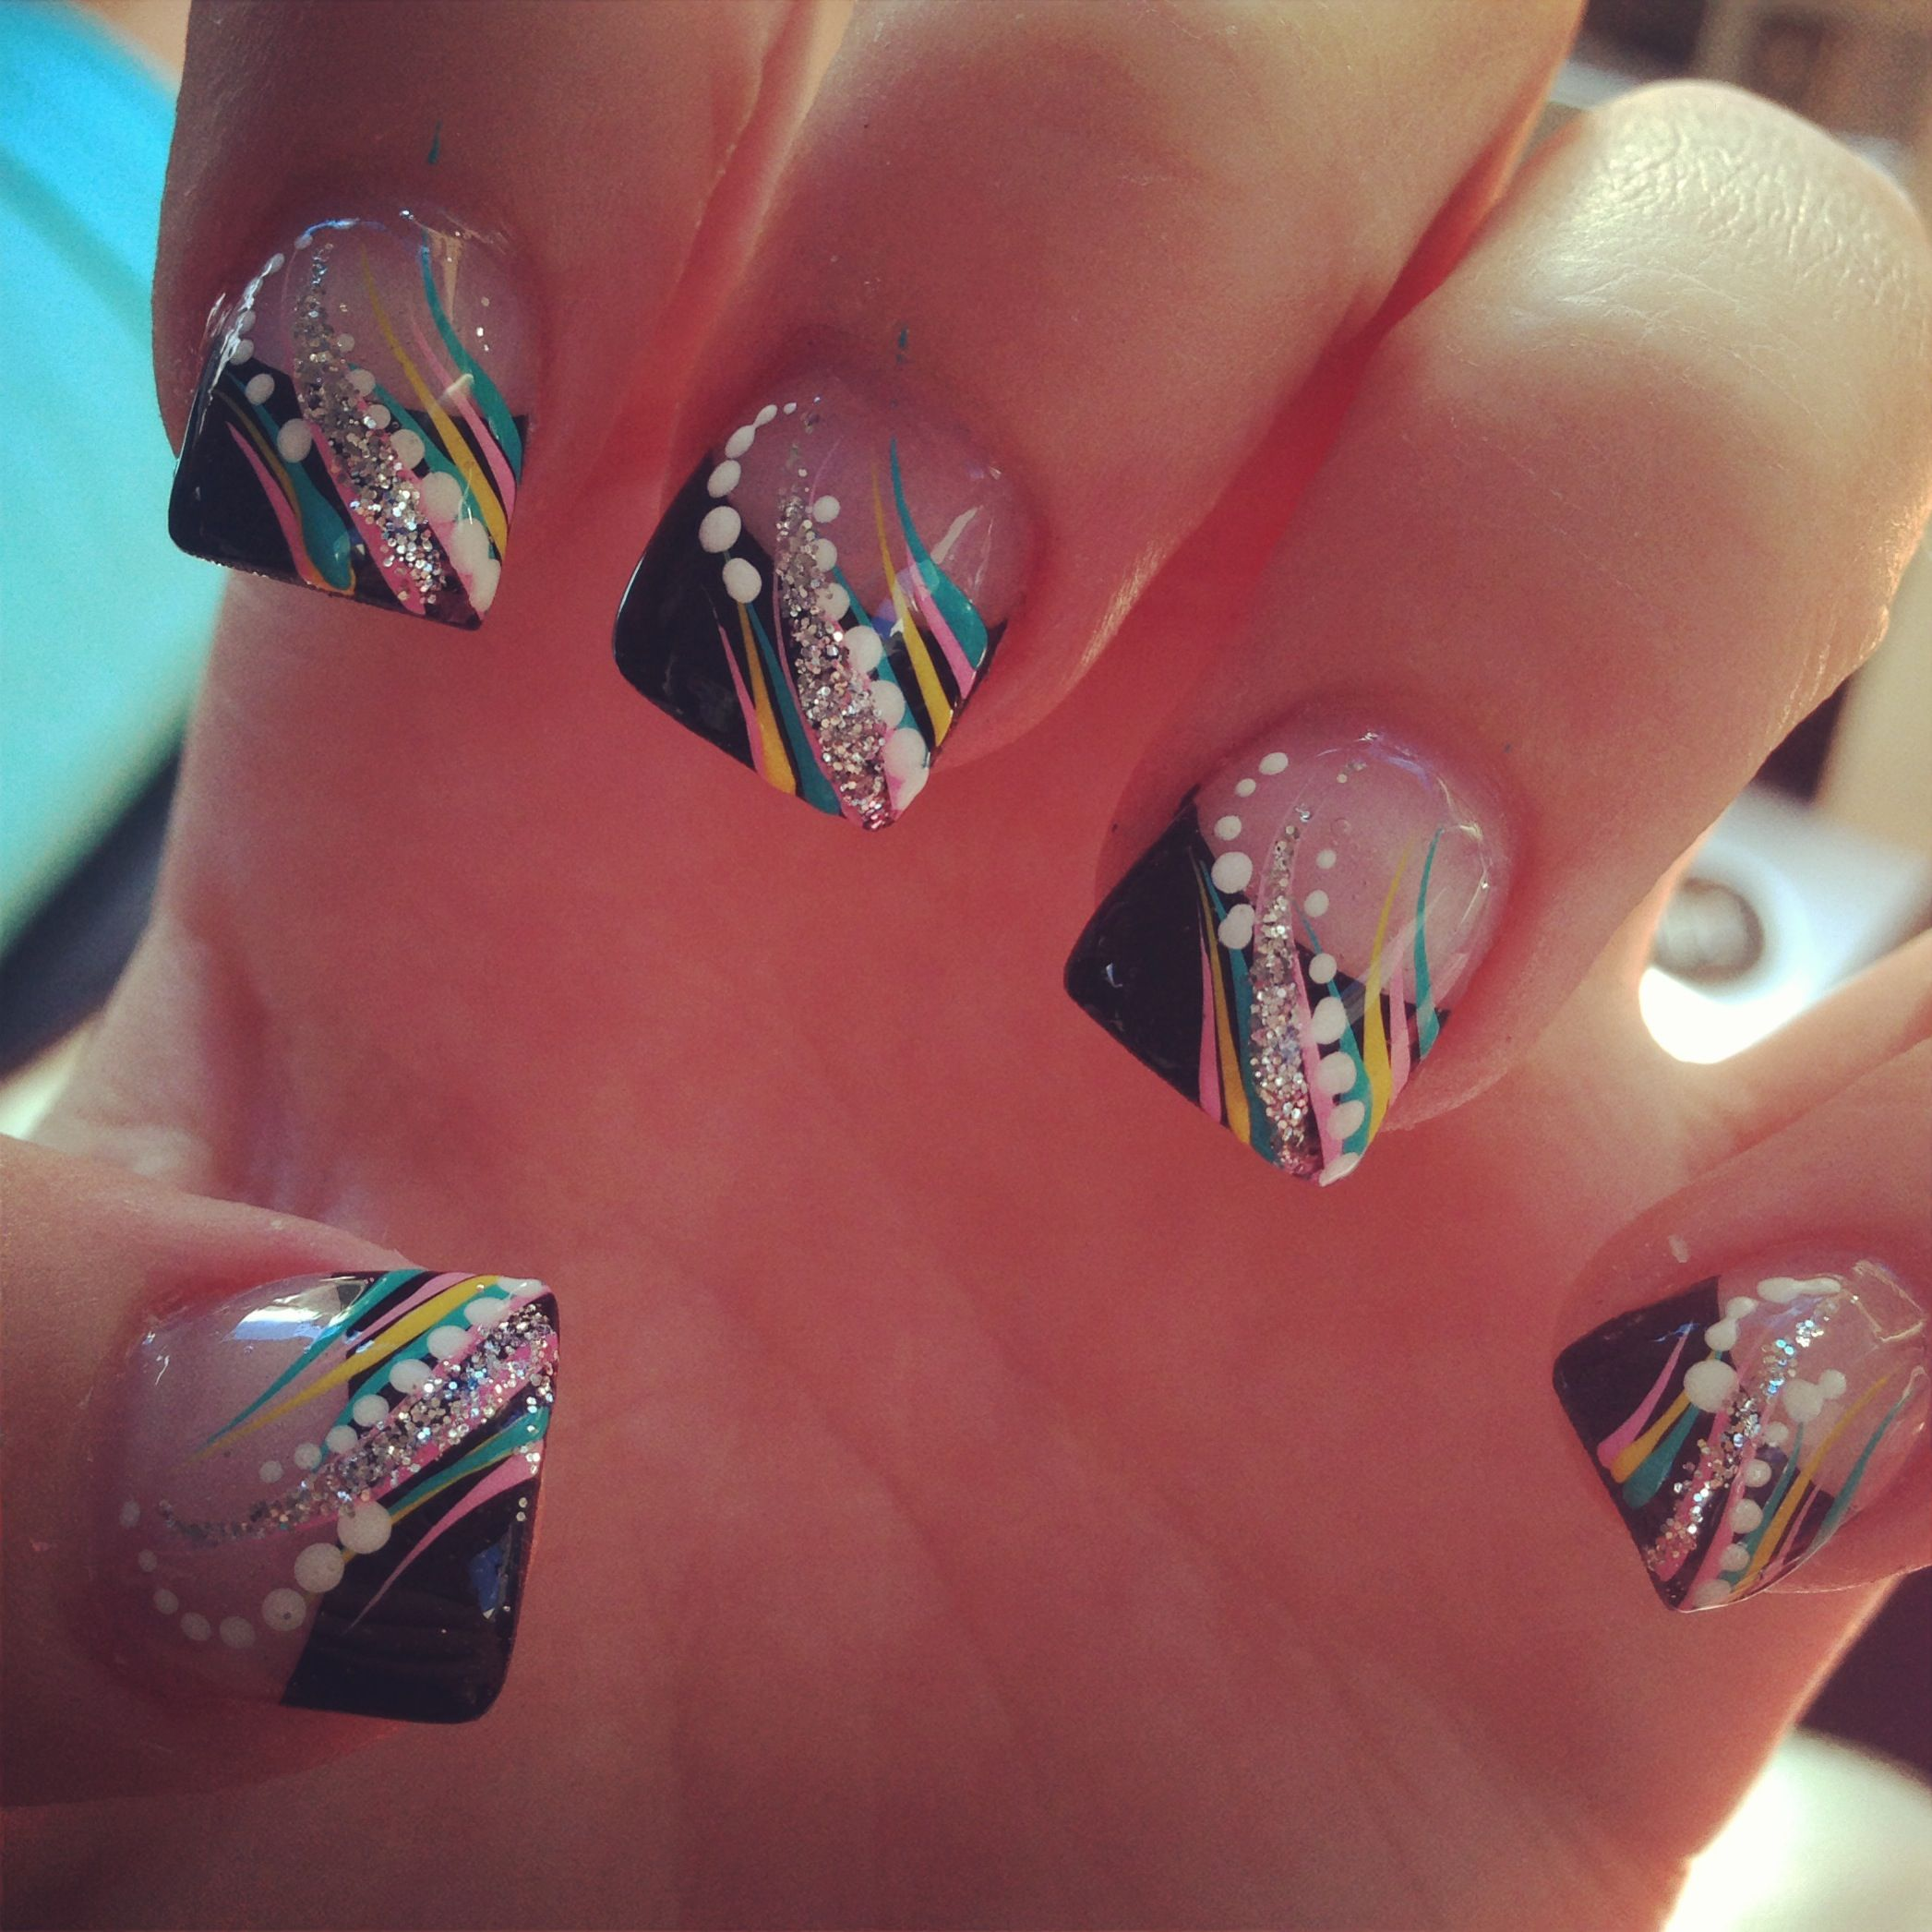 my new nails:) nails acrylic colorful black tip glitter. love